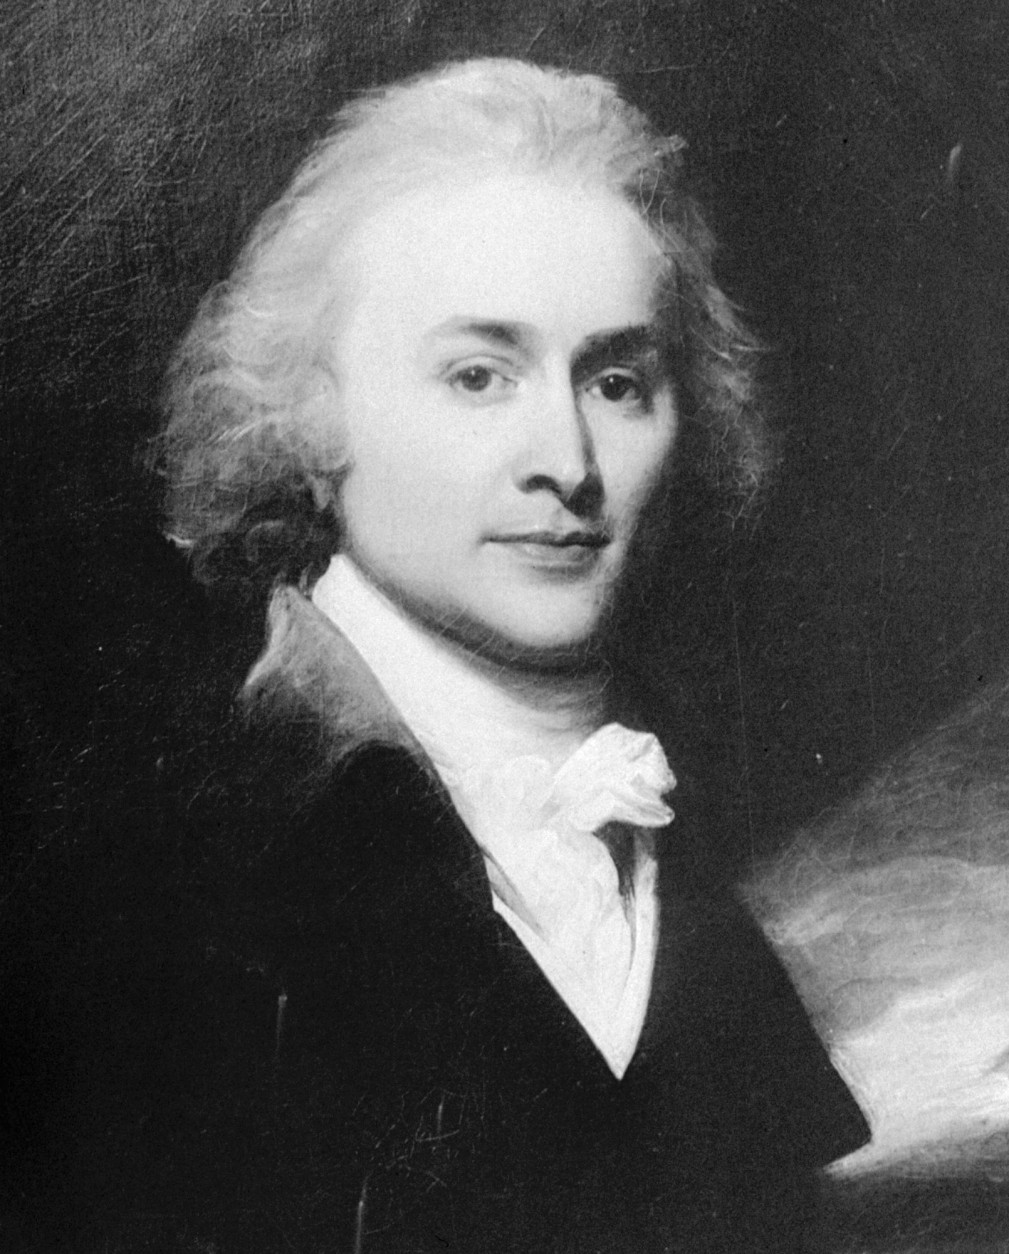 """<p><strong>John Quincy """"The Most Interesting Man in the White House"""" Adams (1825—1829)</strong></p> <p>Where to begin? The easy part is to say he was the son of the second president, John Adams. But everyone knows that.</p> <p>He was also the second president to fail to win a second term in office — the first was his father. He probably didn't have much of a shot at getting reelected, given the fact that in the election of 1824, he managed to get to the White House despite winning neither the popular vote nor the first ballot of the Electoral College. (Some serious horse-trading went on after that first vote, which left a lot of people upset.)</p> <p>He was also known for skinny-dipping in the Potomac as president, part of his regular fitness routine. (The story of a reporter sitting on Adams' clothes until he consented to an interview is unconfirmed, but awesome.) He also kept an alligator as a pet in a bathroom in the East Room, and would direct visitors there without telling them about it, just to scare them.</p> <p>He was the U.S. representative to the U.K., Russia, Prussia and the Netherlands, and served in the Senate before becoming president and in the House afterward (yes, AFTER serving as president).</p> <p>He also kept a daily diary from age 12 until he died at 80.</p>"""